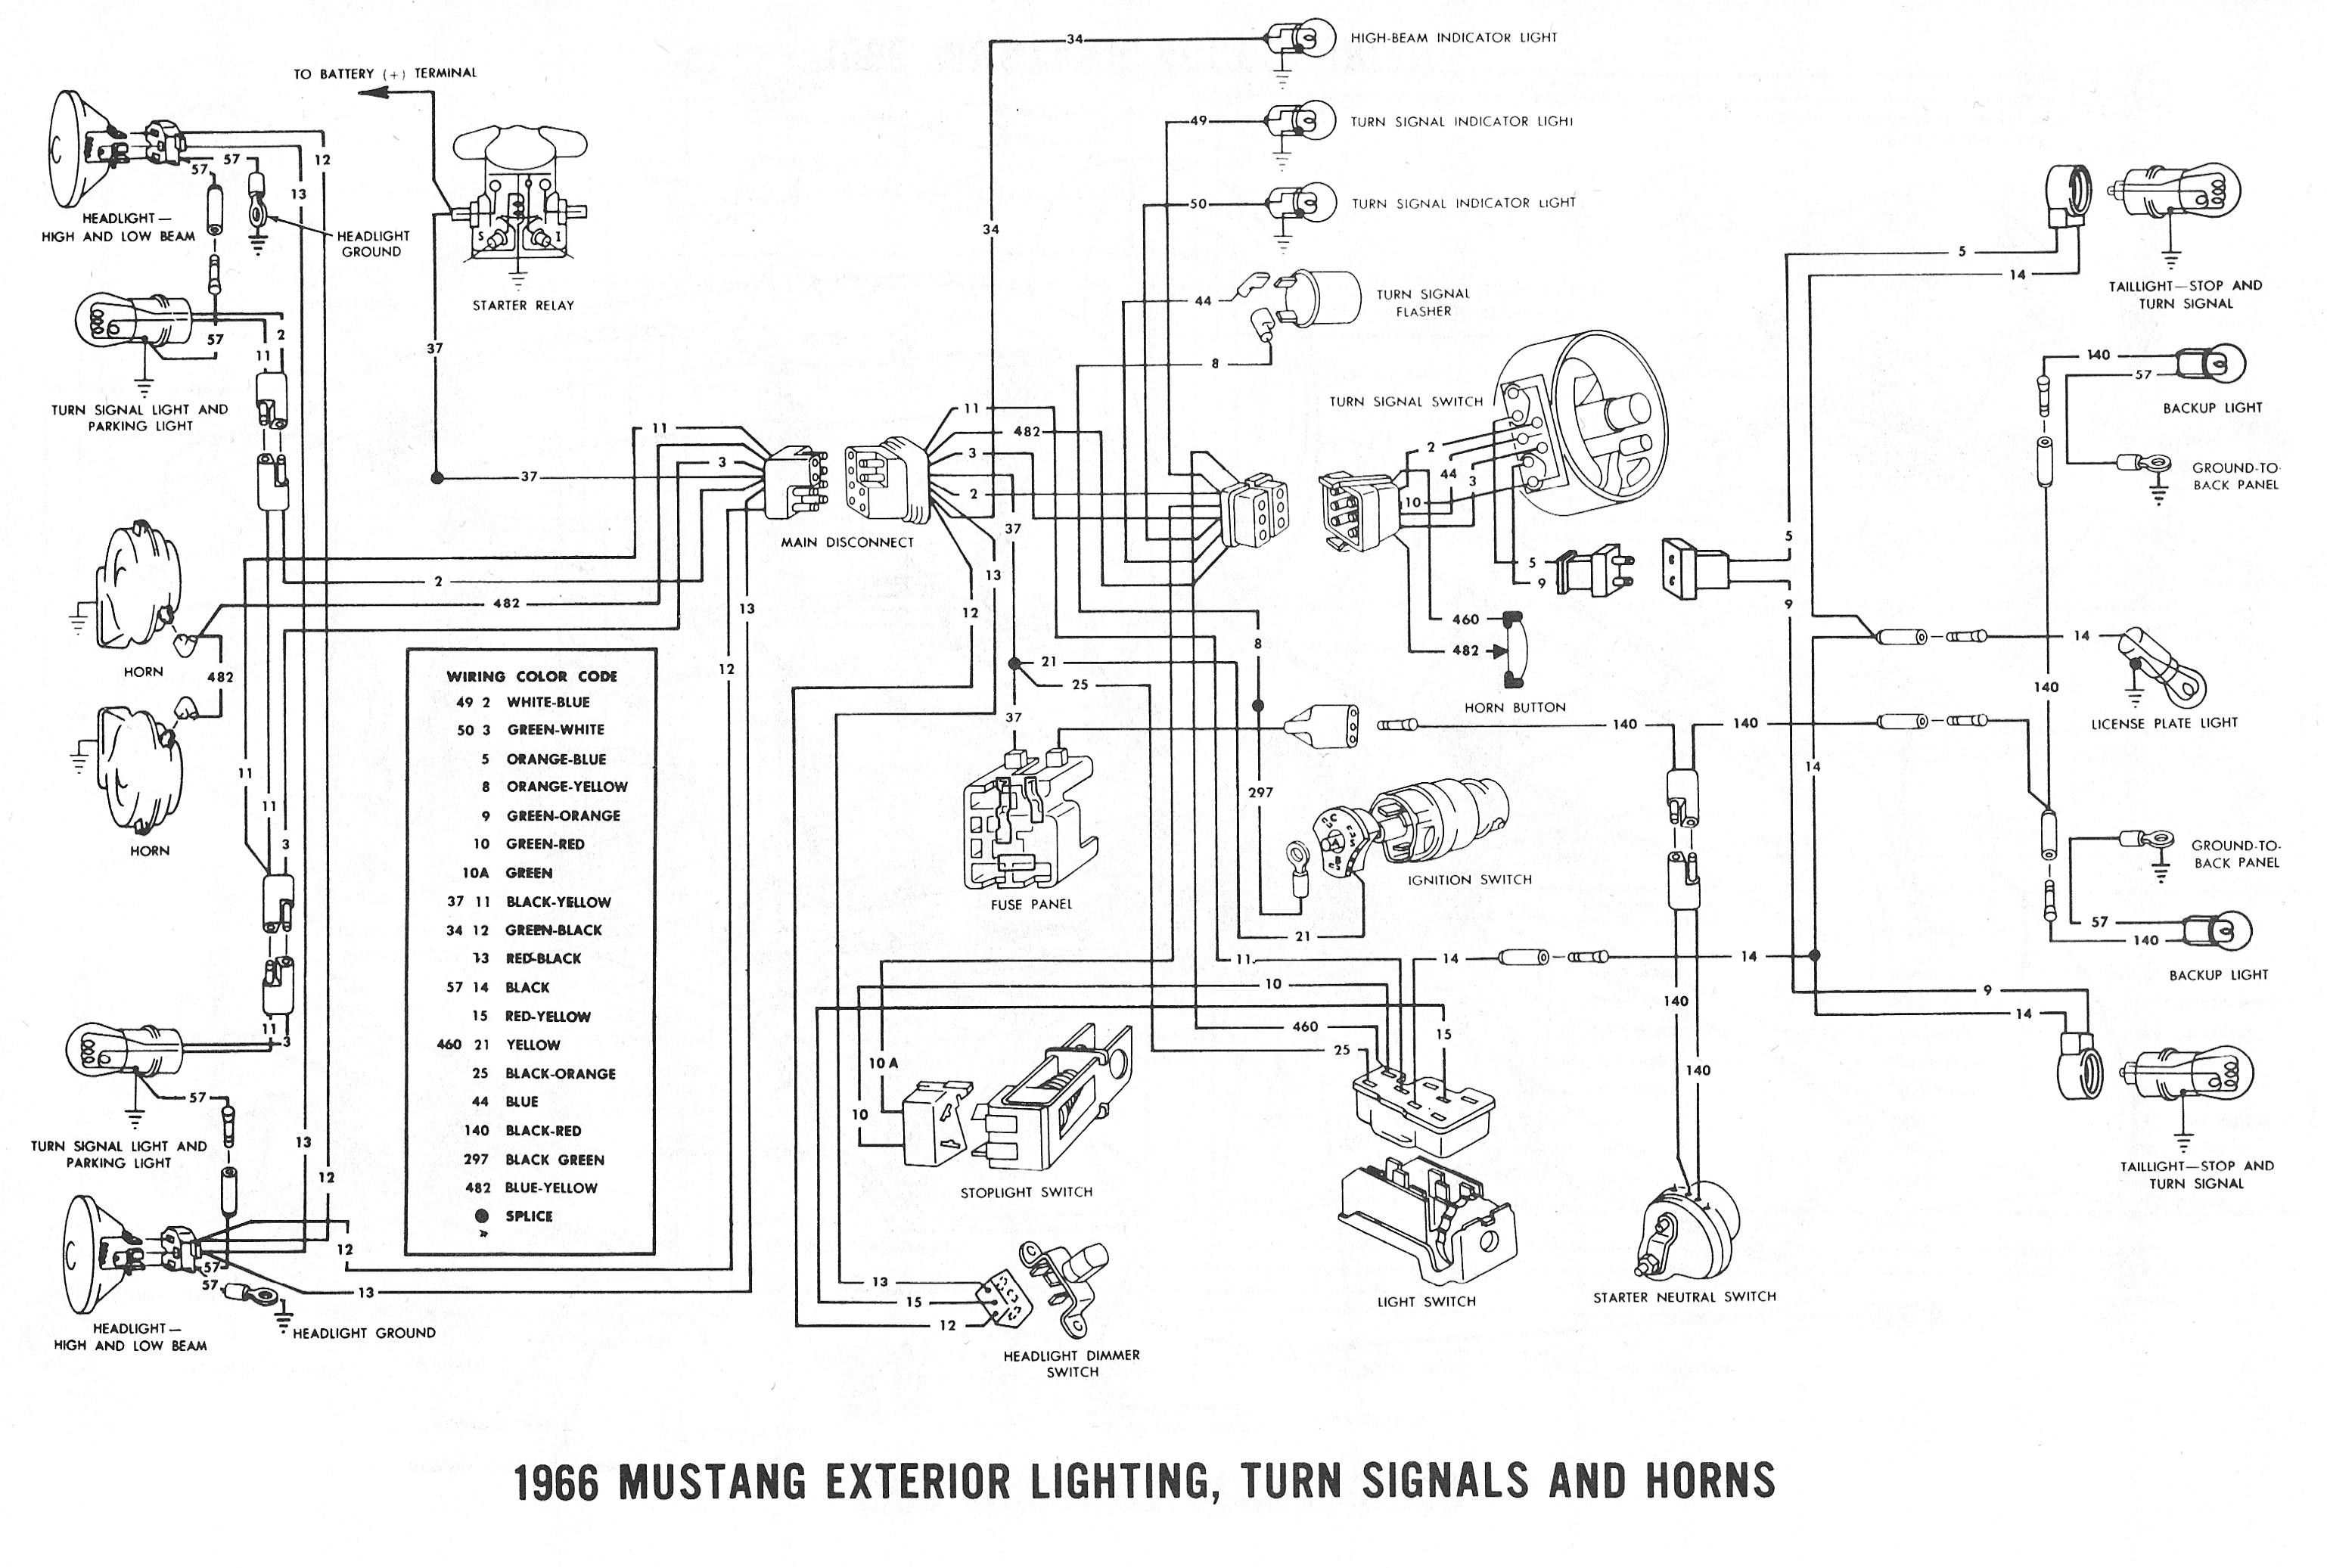 1967 ford f100 turn signal switch wiring diagram wiring schematics rh  caltech ctp com 65 Mustang Wiring Schematic 1965 ford mustang dash wiring  diagram